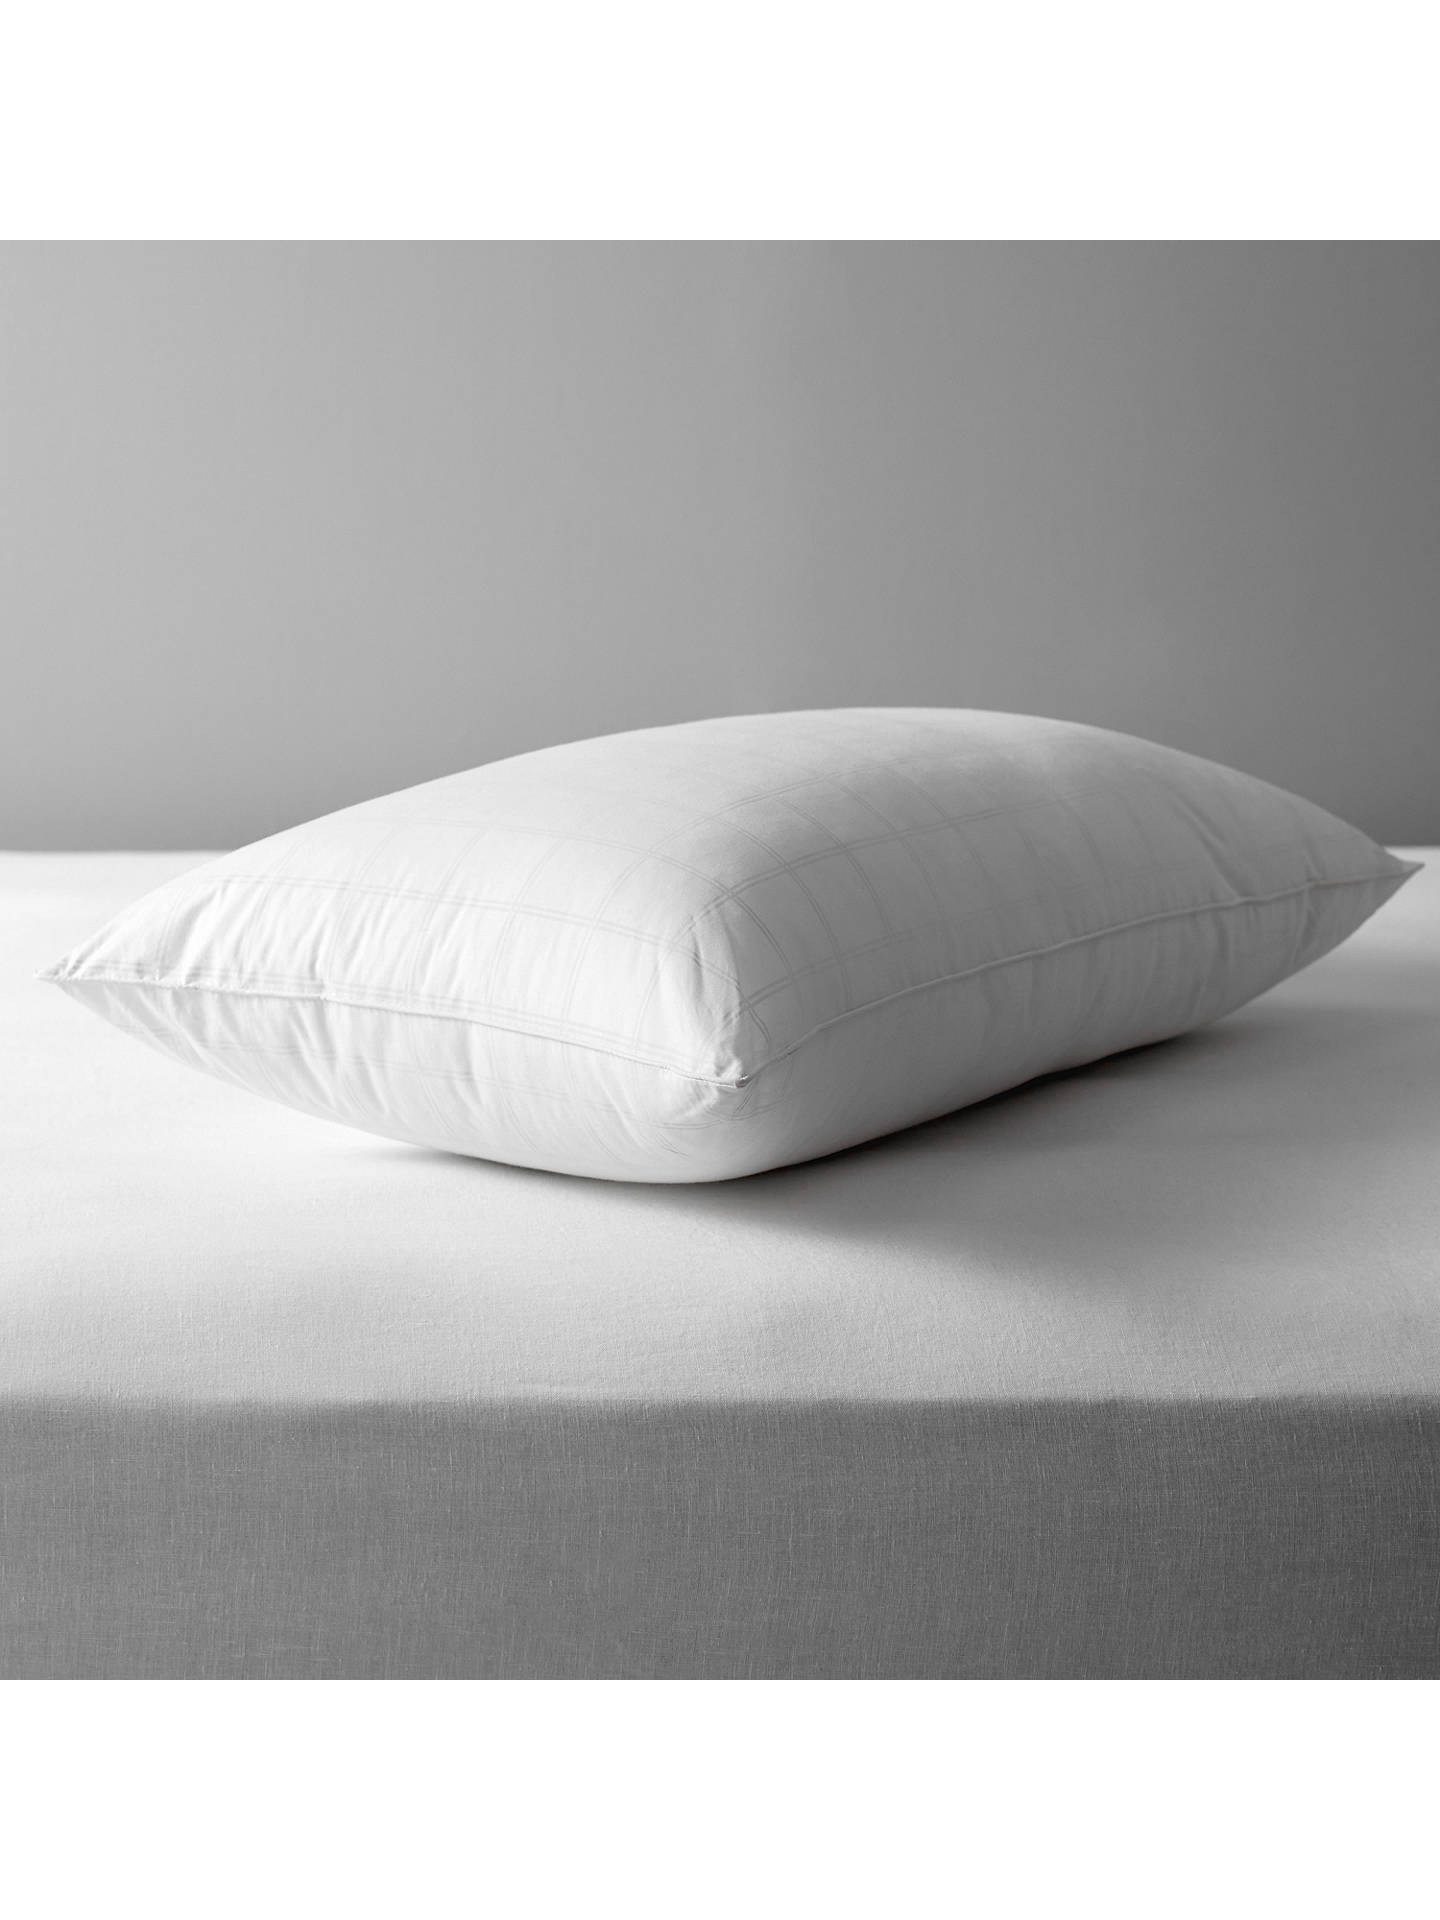 BuyJohn Lewis Synthetic Microfibre Standard Pillow, Extra Firm Online at johnlewis.com